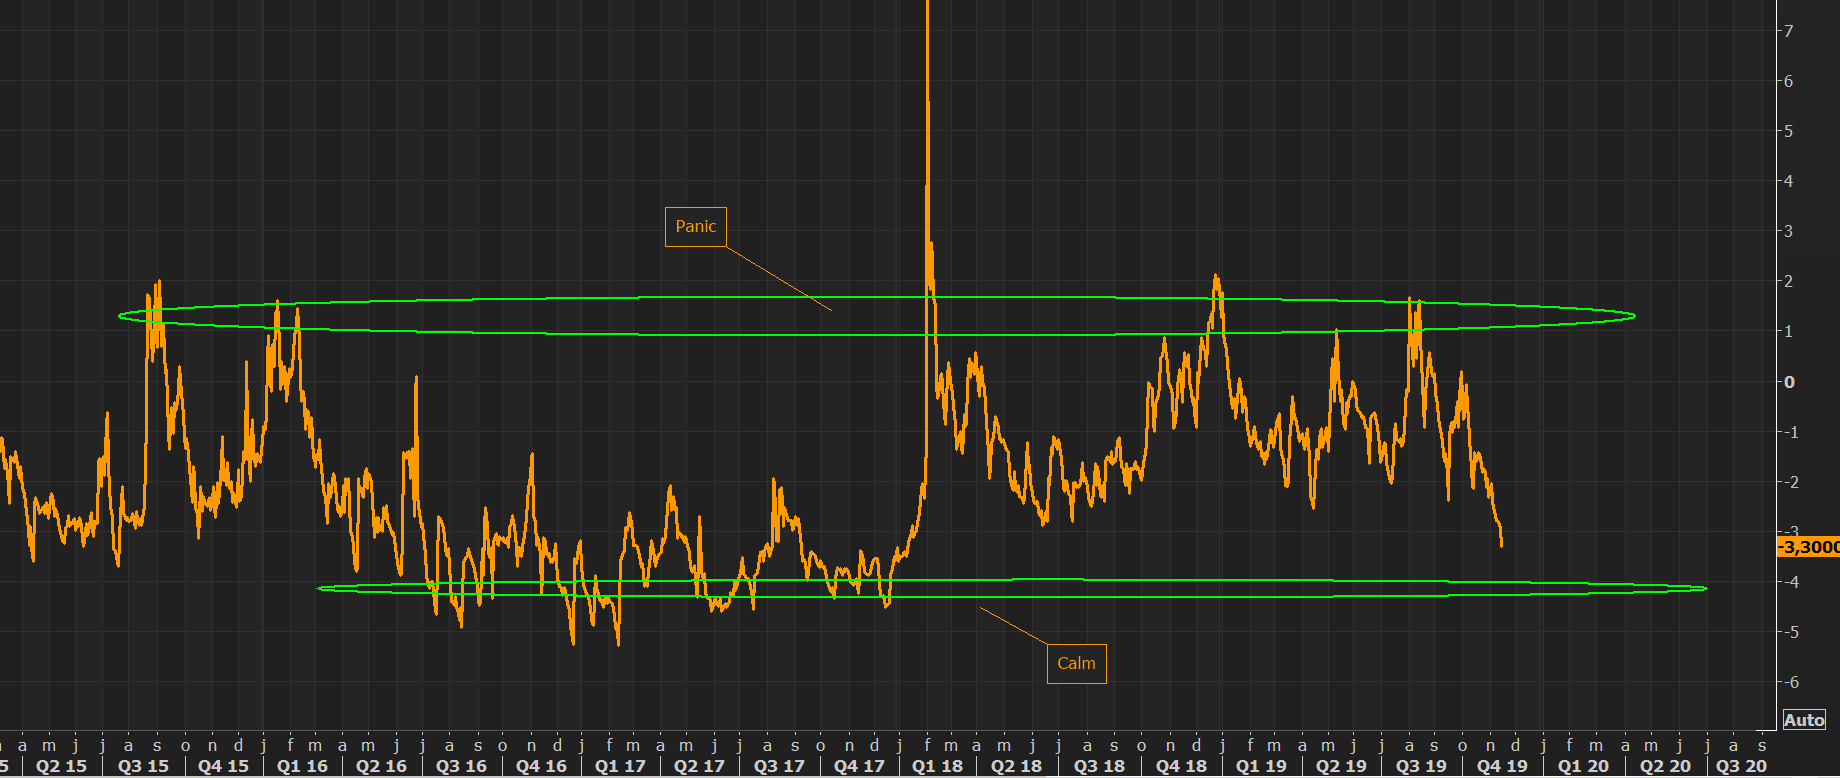 Volatility - so calm, so calm, but have no fear?